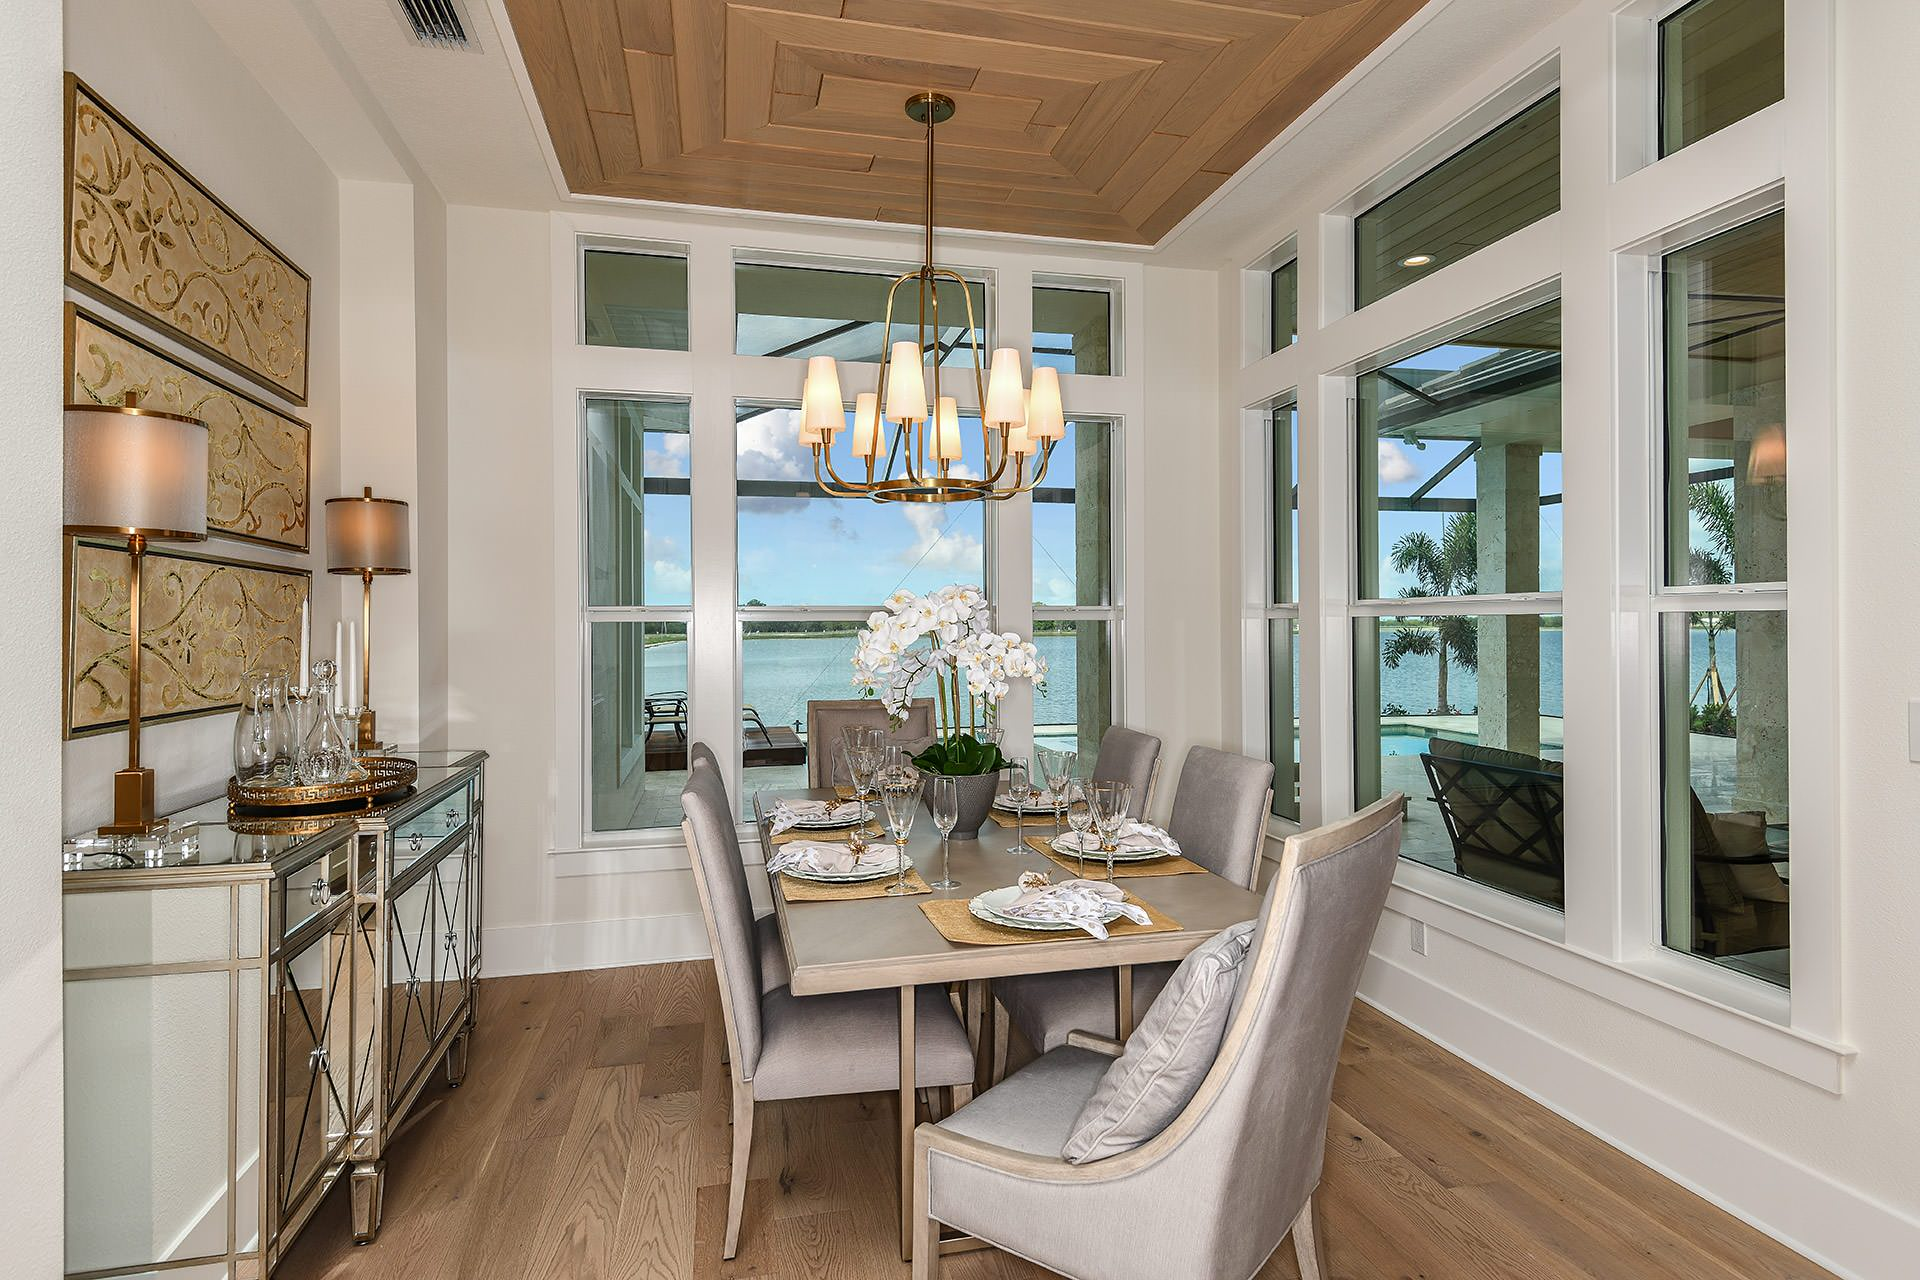 75 Beautiful Mediterranean Dining Room Pictures Ideas February 2021 Houzz